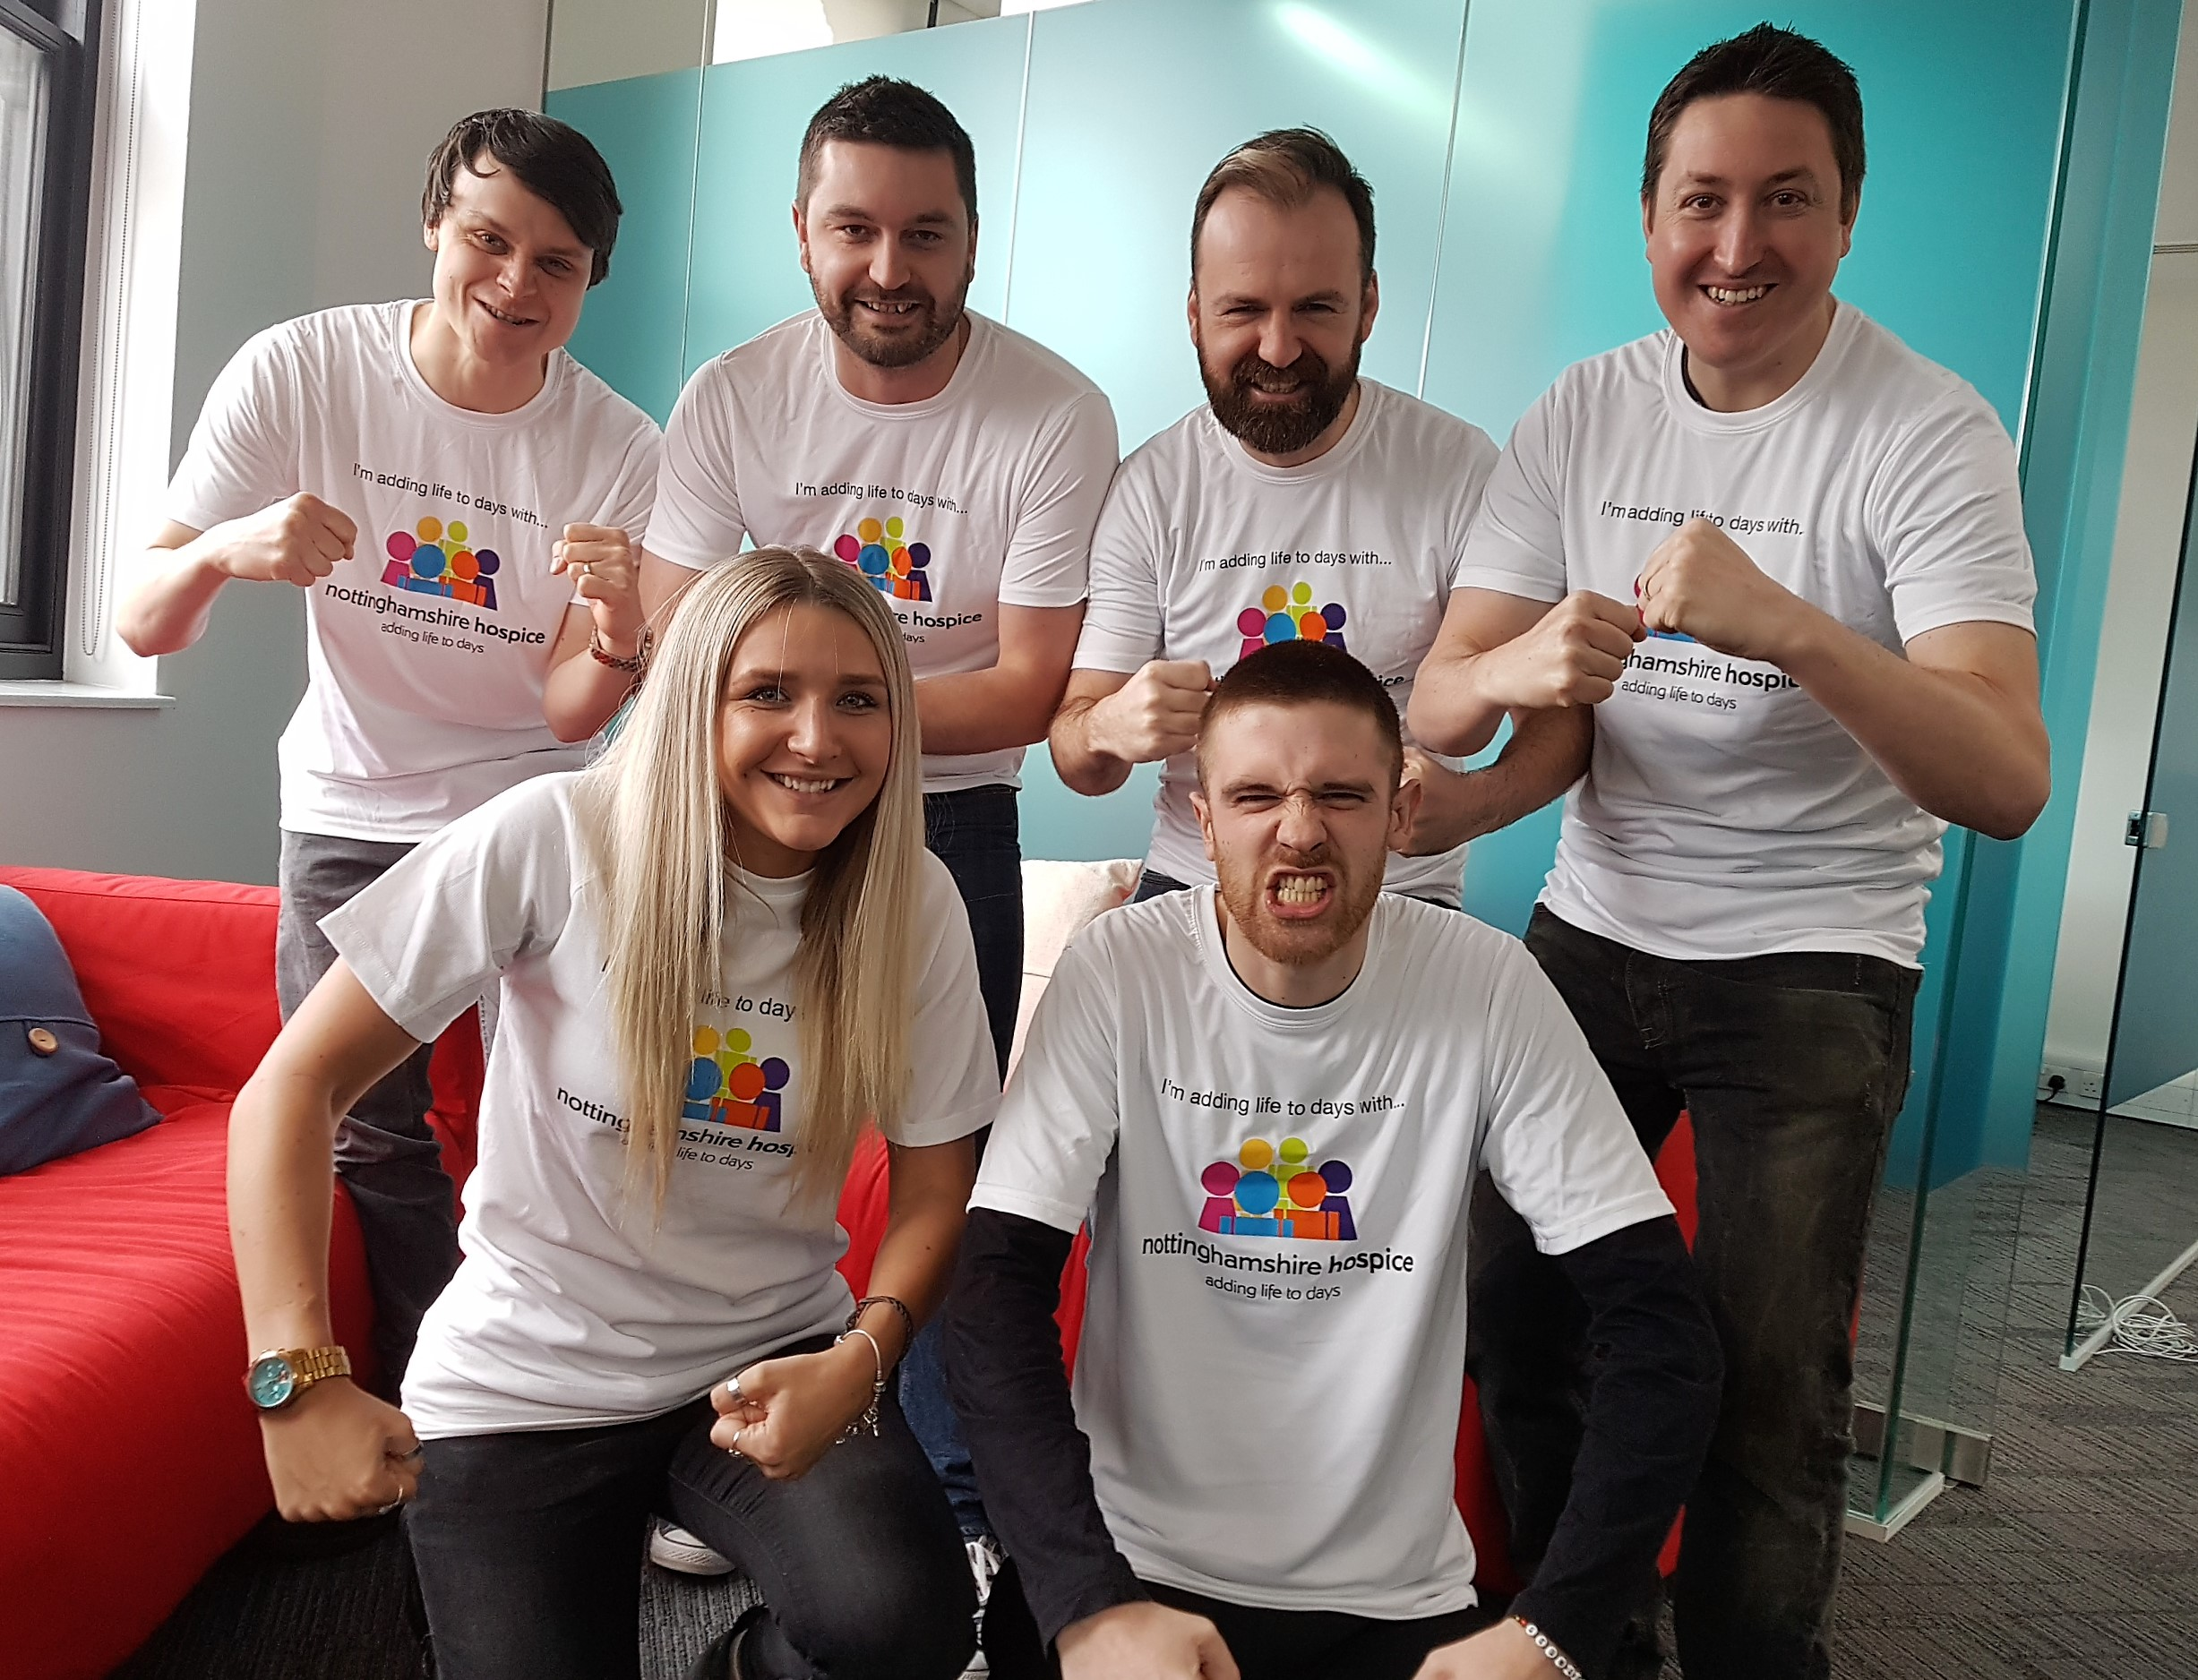 Jade Hutchinson and her colleagues at Nottinghamshire company VIA are raising money for the Nottinghamshire Hospice - Penguin PR: public relations, media and communications